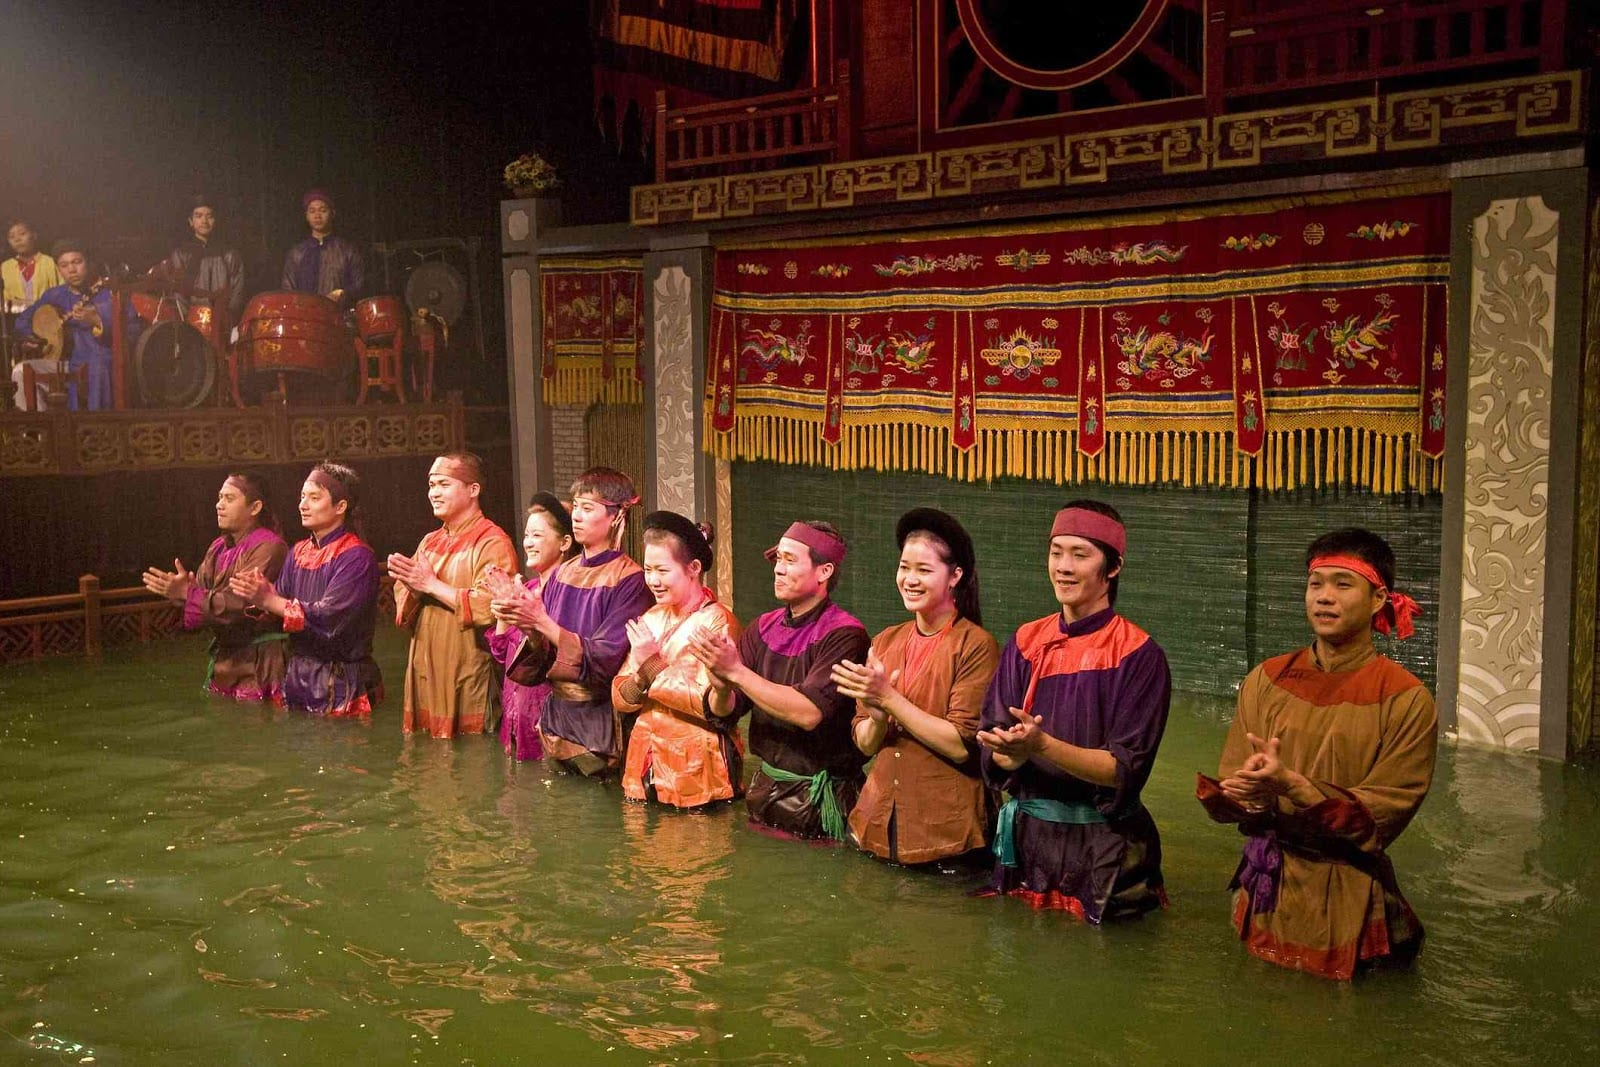 Vietnamese Theater: The Water Puppet Show in Hanoi - Water Puppet Show Artists